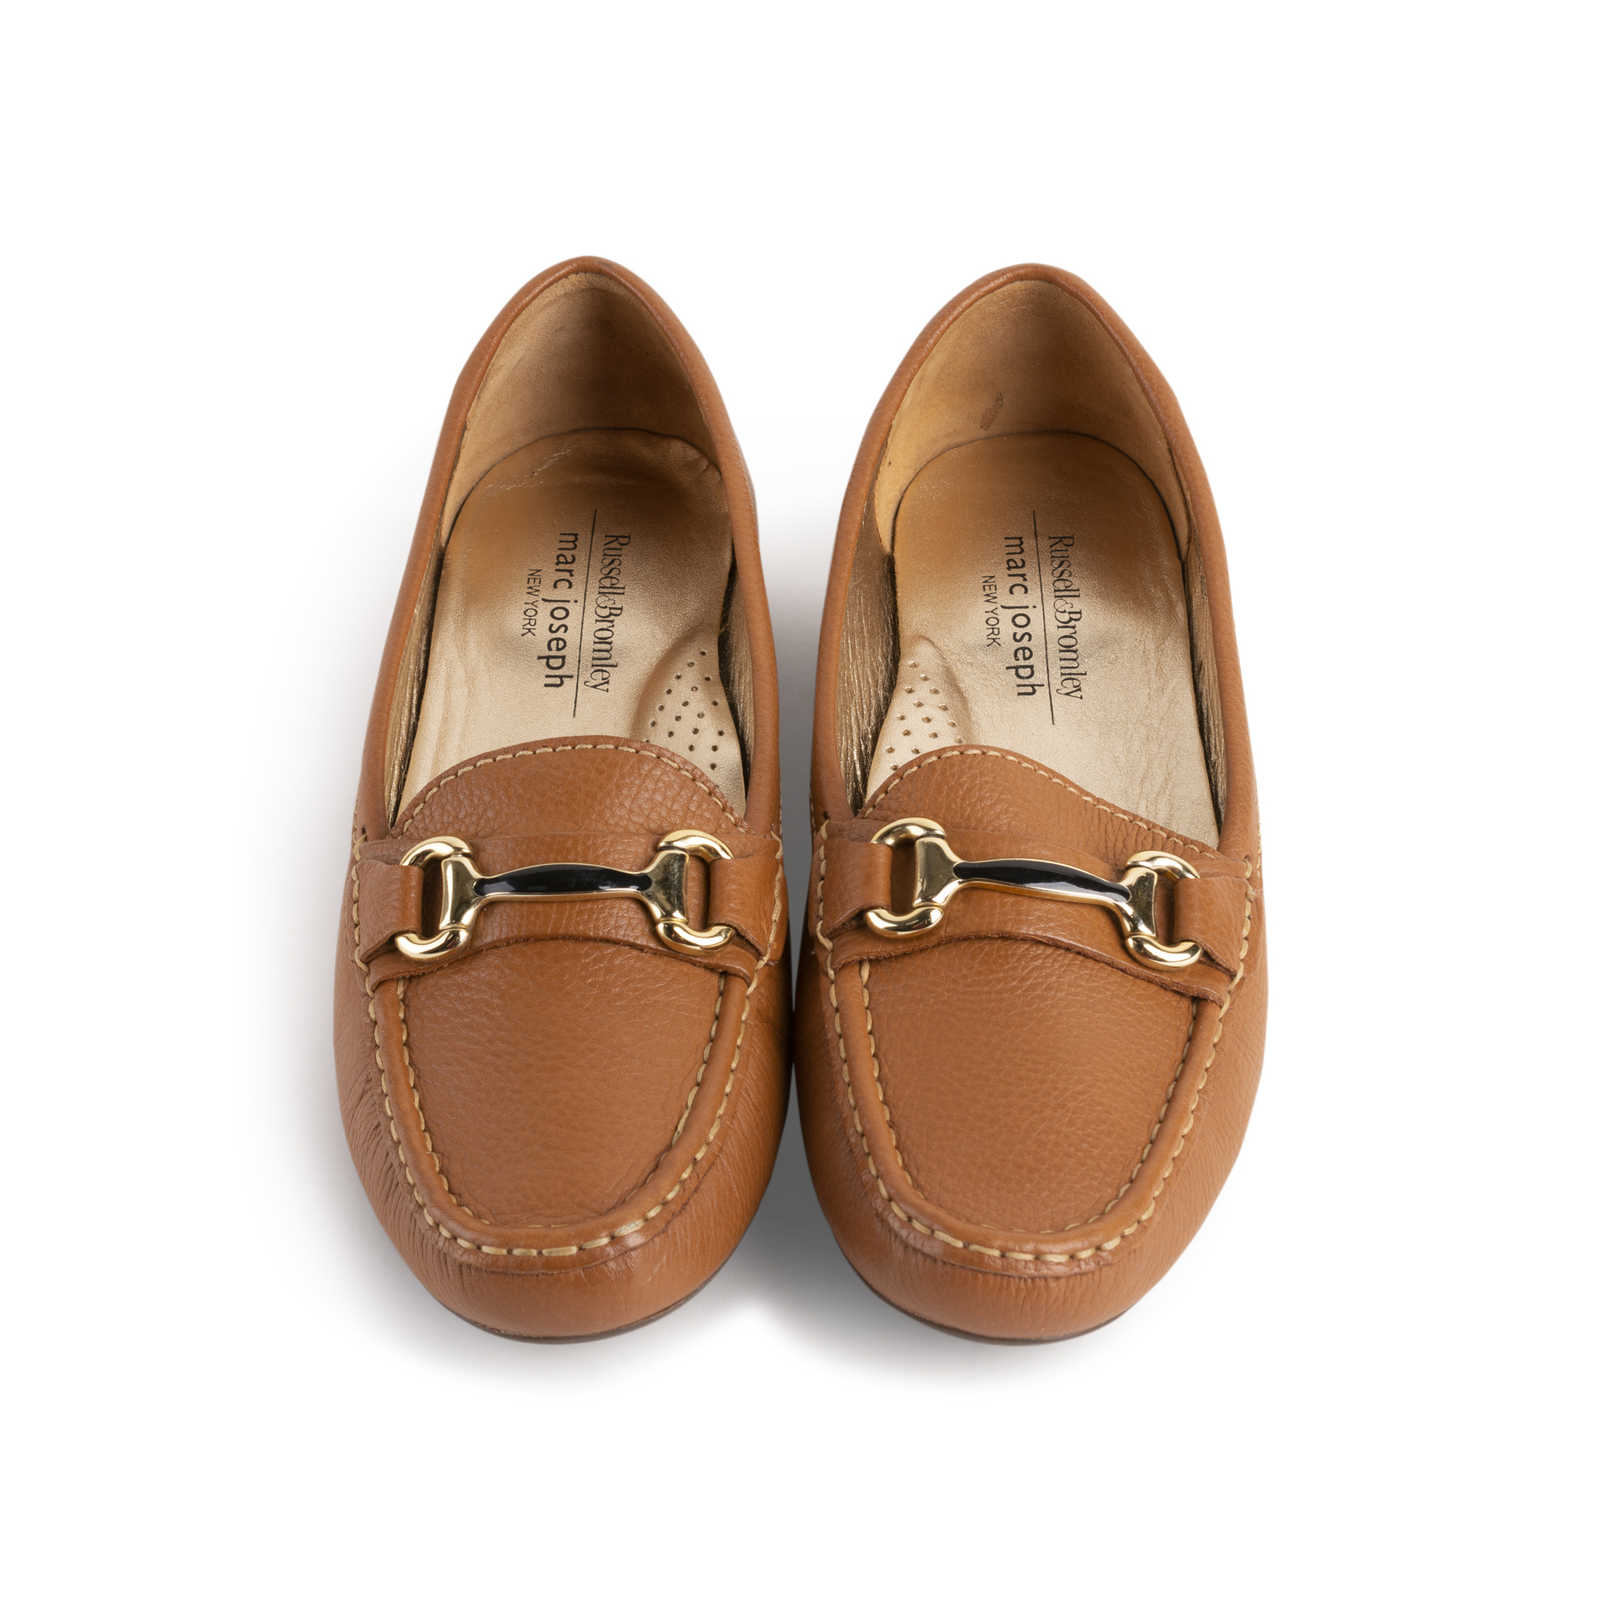 russell and bromley loafers